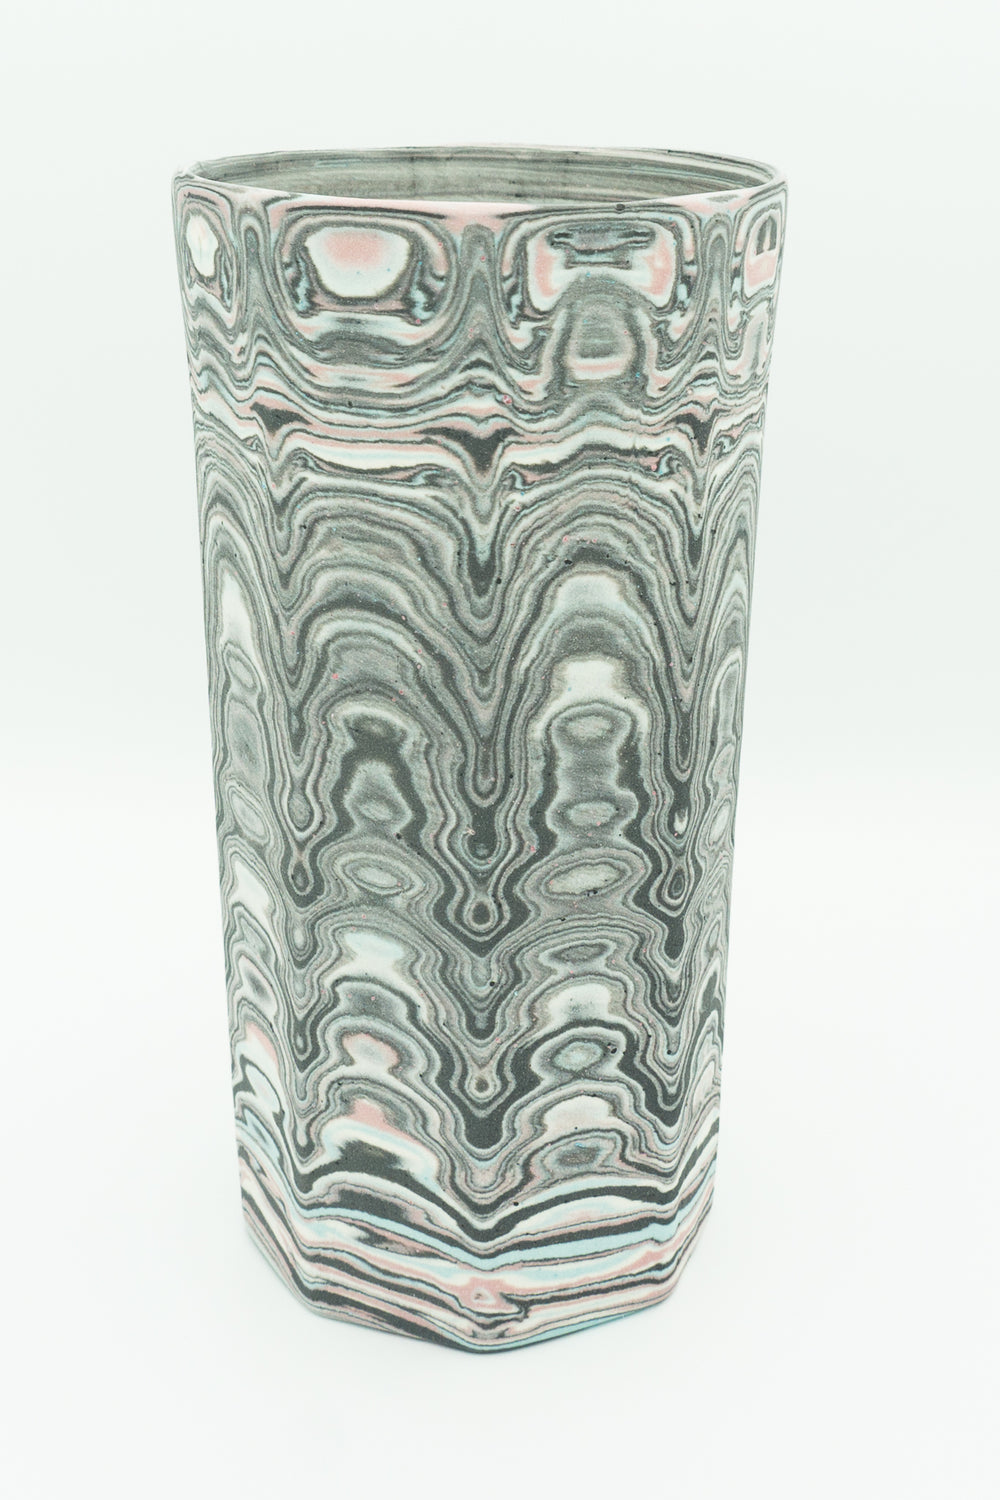 Faceted, Agateware Tumbler in Blue, Pink, Black & White. 20 oz